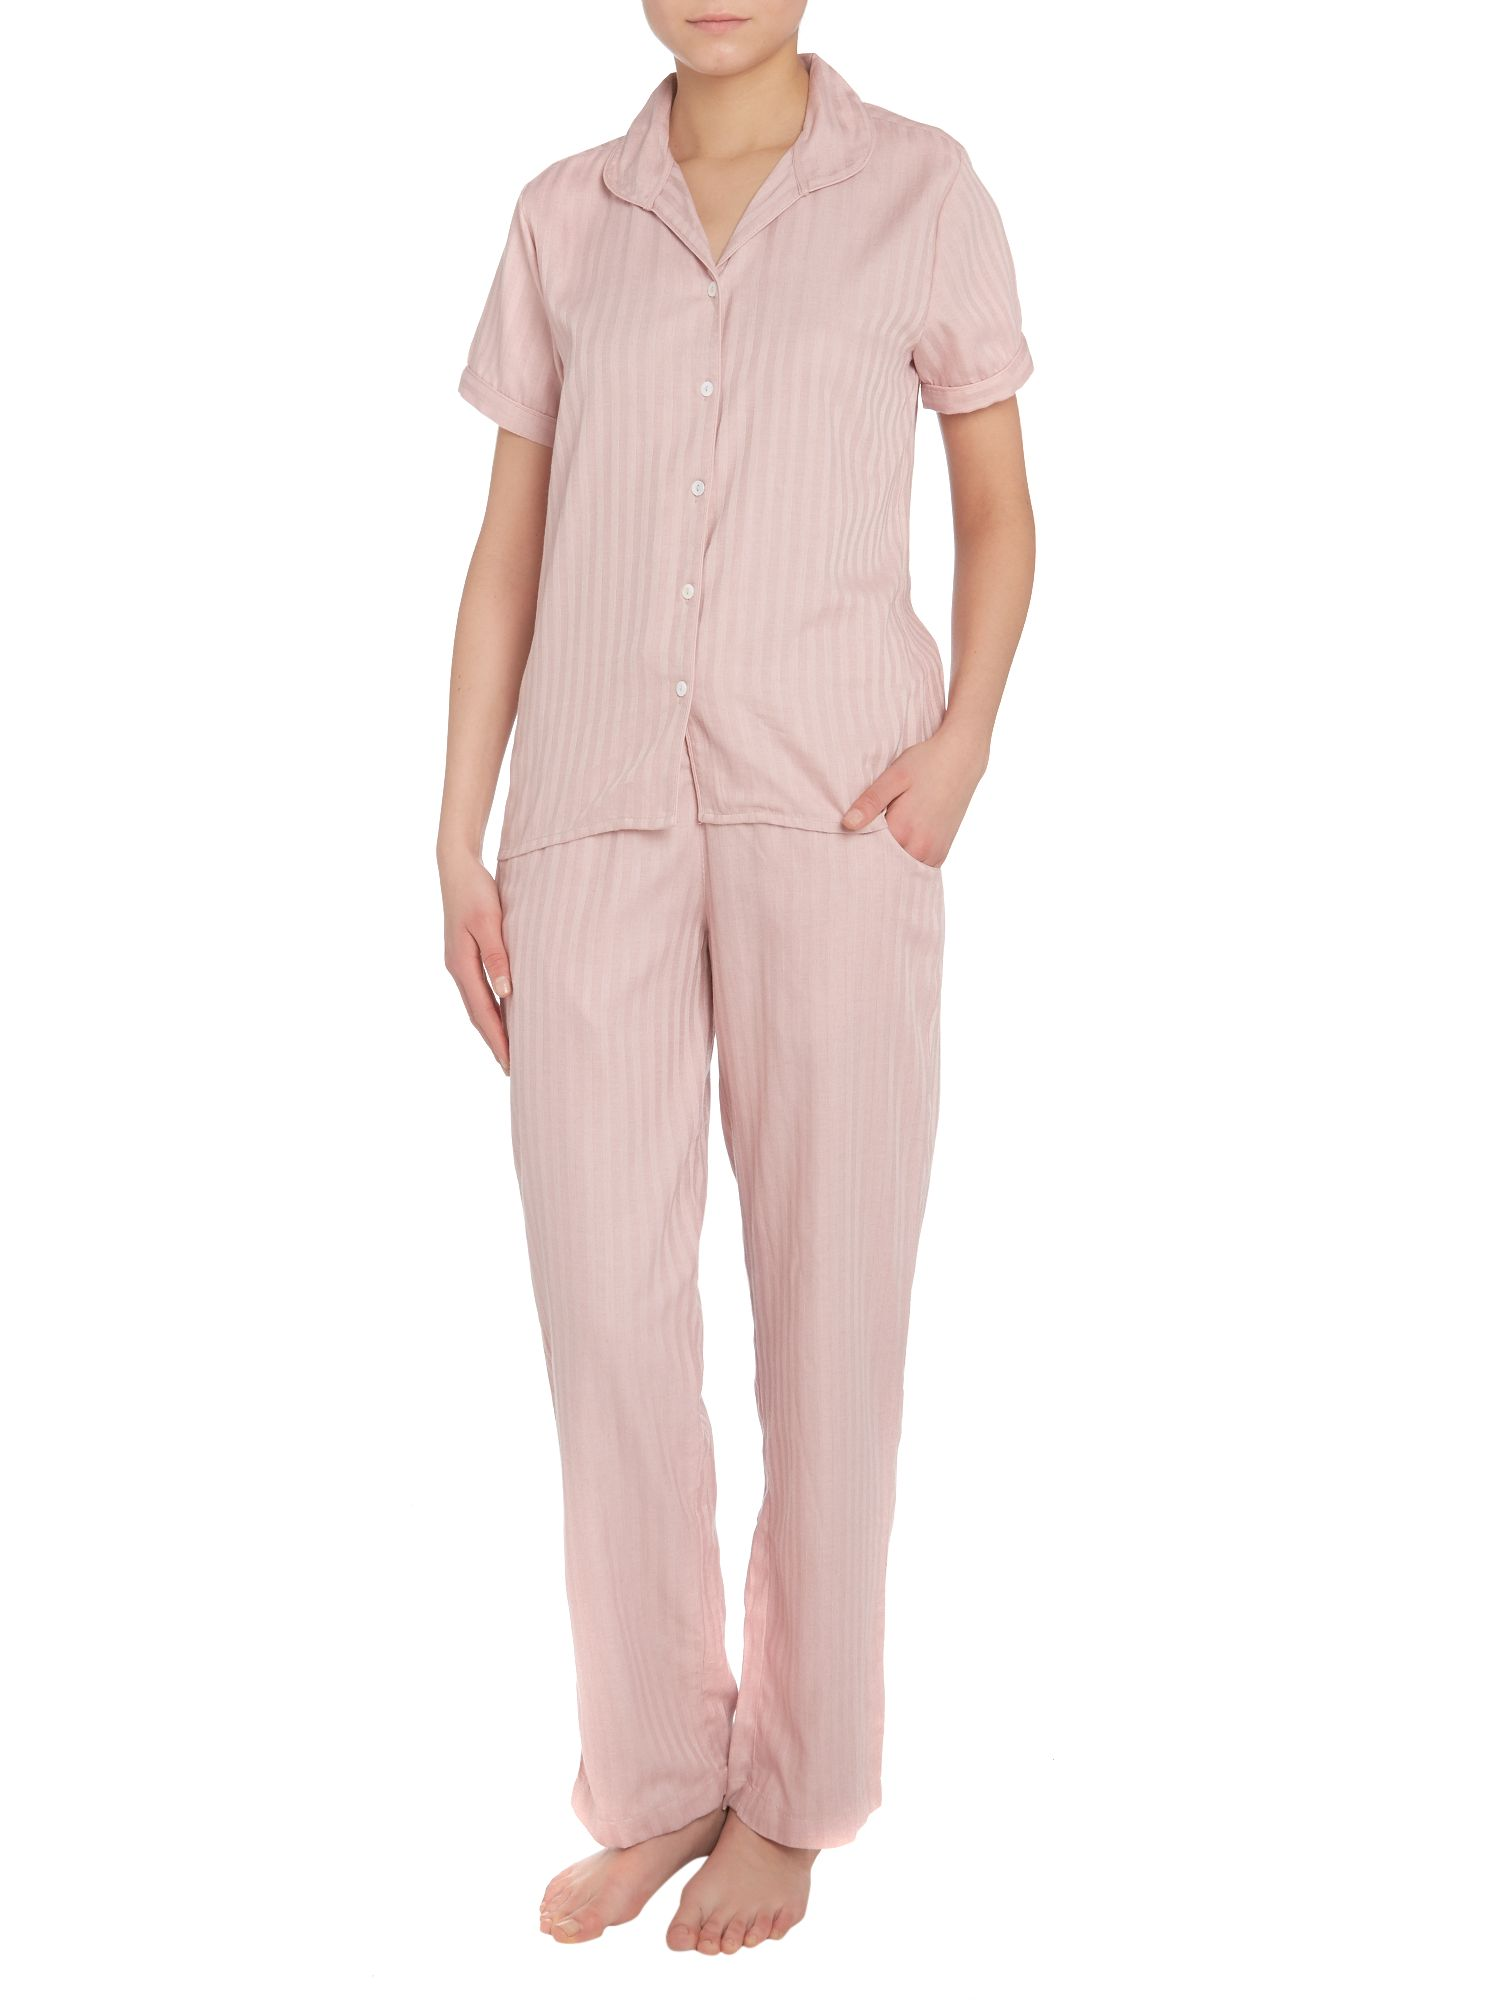 Self Stripe Nightwear Range